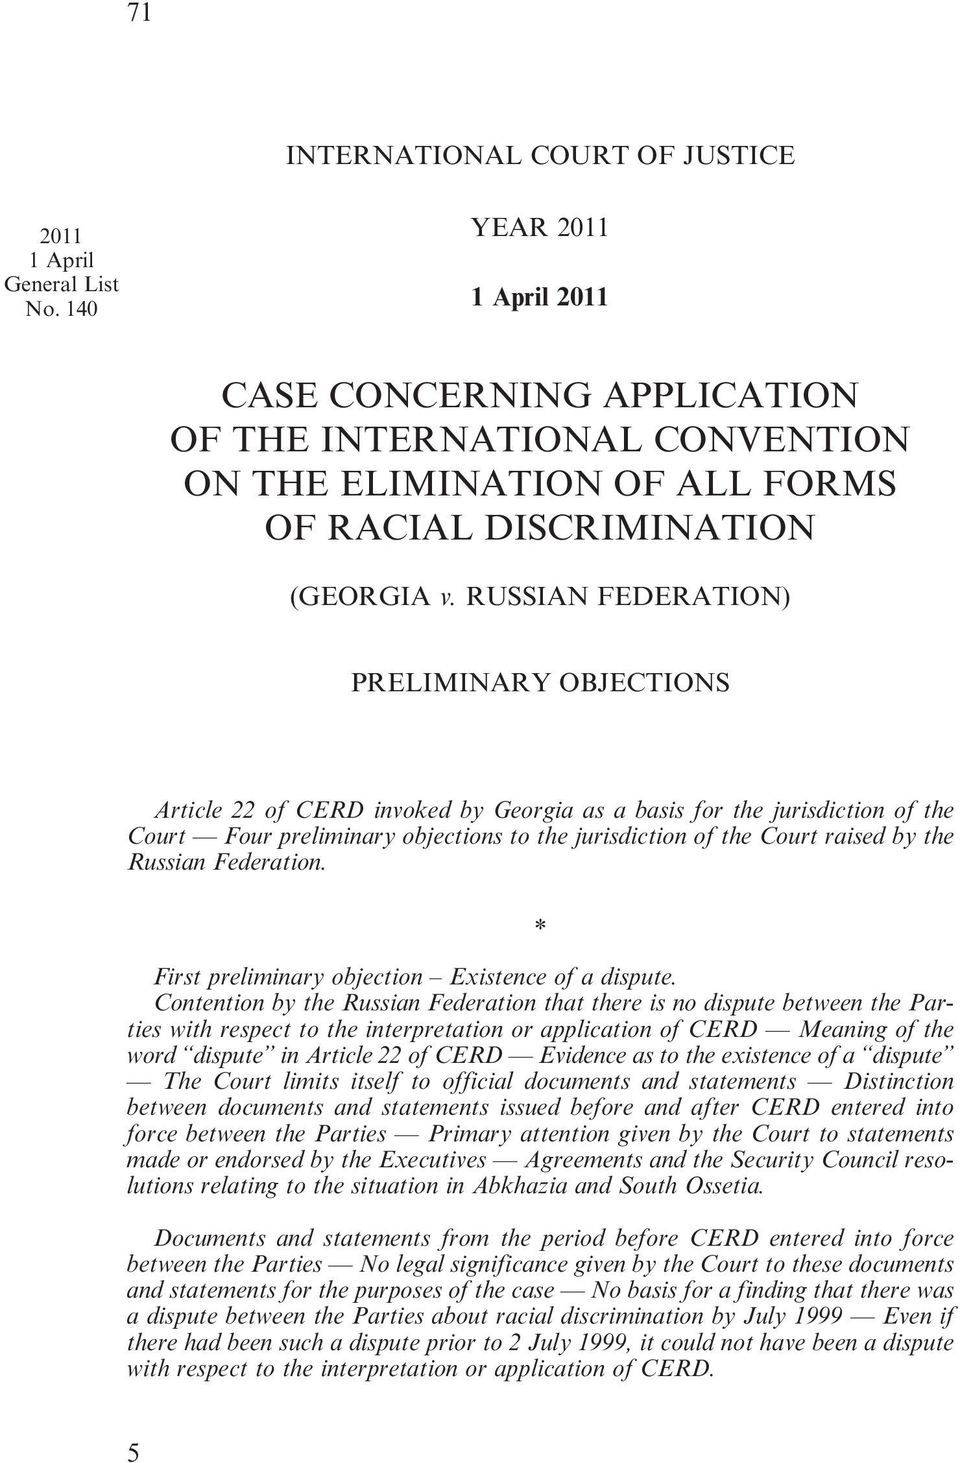 RUSSIAN FEDERATION) PRELIMINARY OBJECTIONS Article 22 of CERD invoked by Georgia as a basis for the jurisdiction of the Court Four preliminary objections to the jurisdiction of the Court raised by